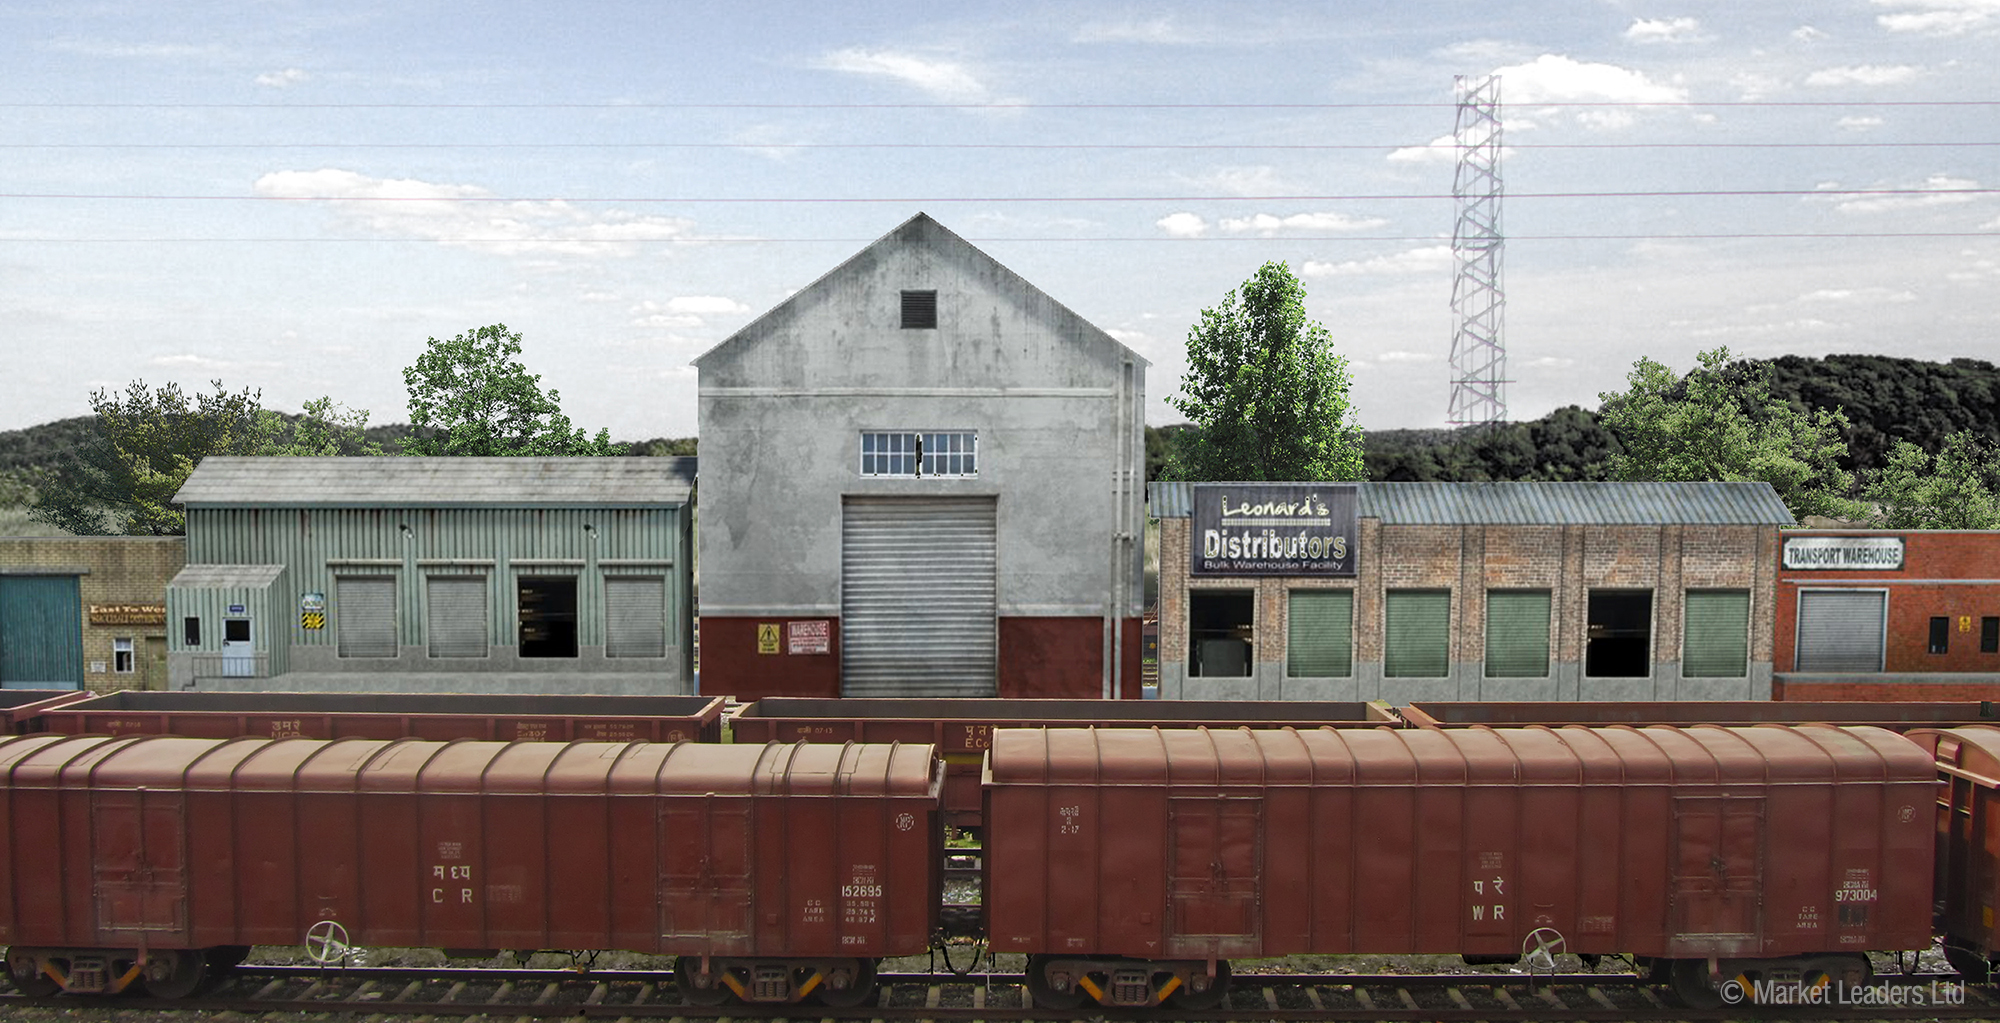 Less Model: Knowing Model railway industrial buildings